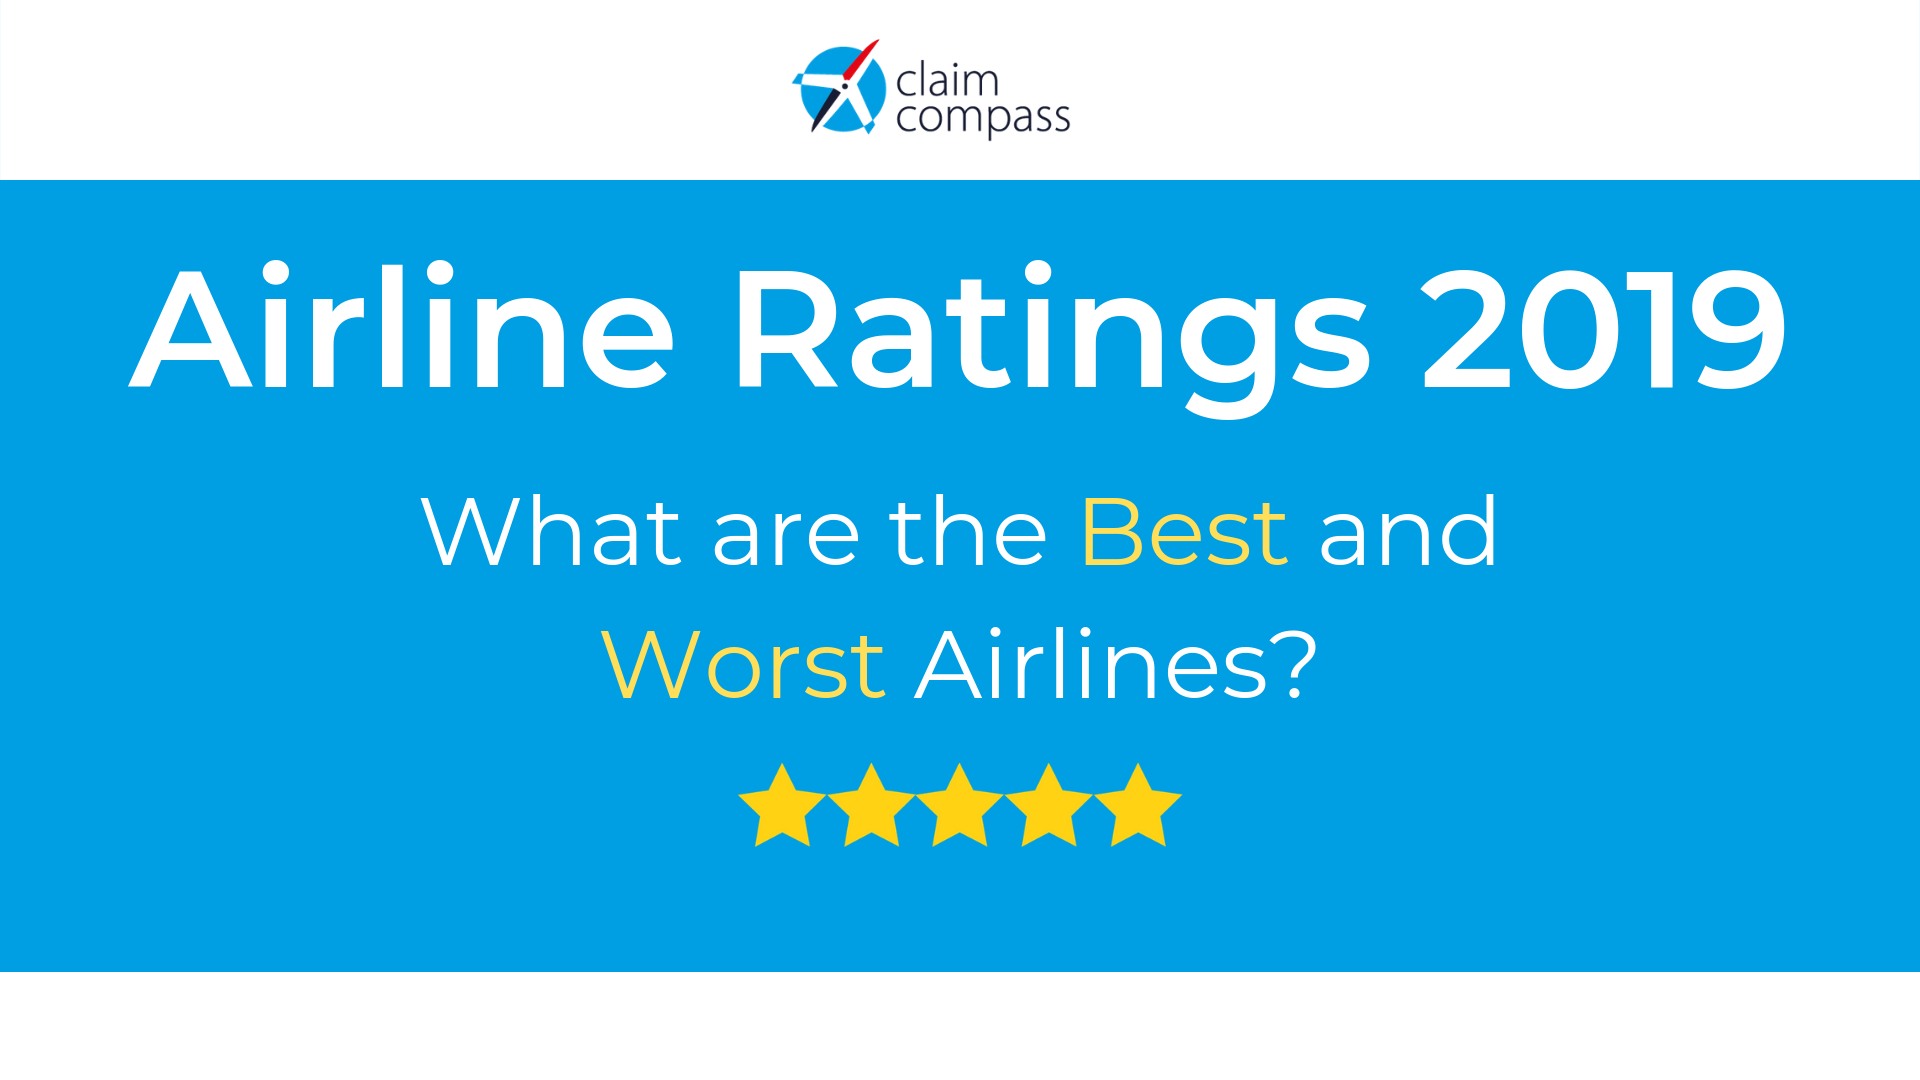 We Rated 150 Carriers. Here Are the World's Best and Worst Airlines.